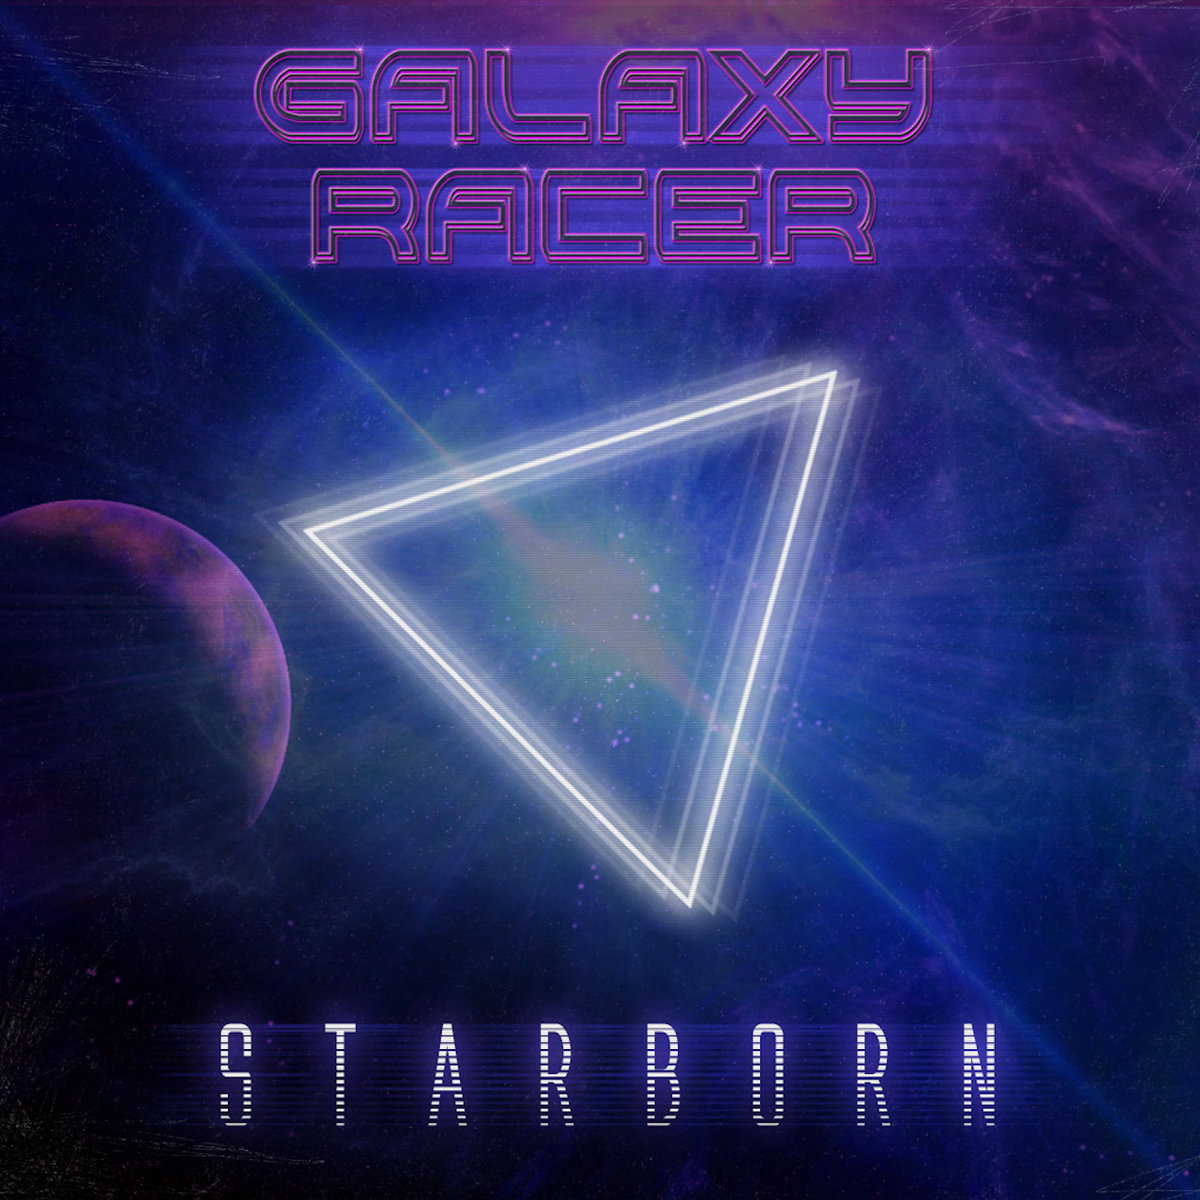 Art for Inside the Atmosphere by Galaxy Racer